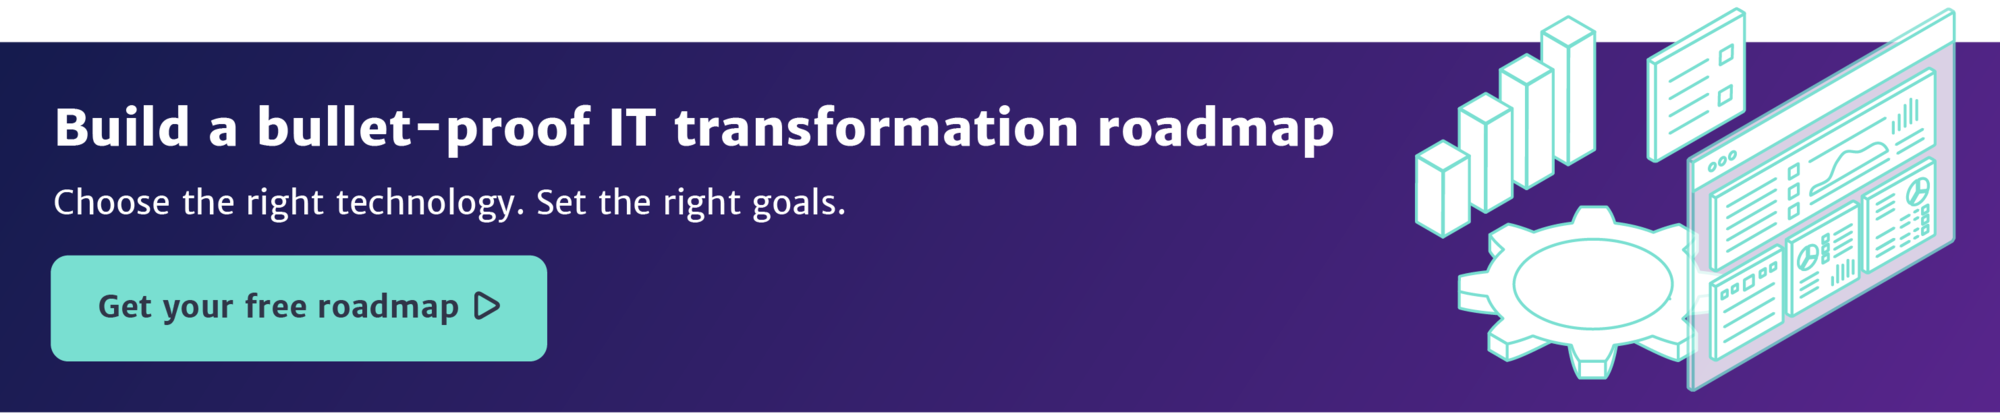 IT transformation roadmap CTA wide